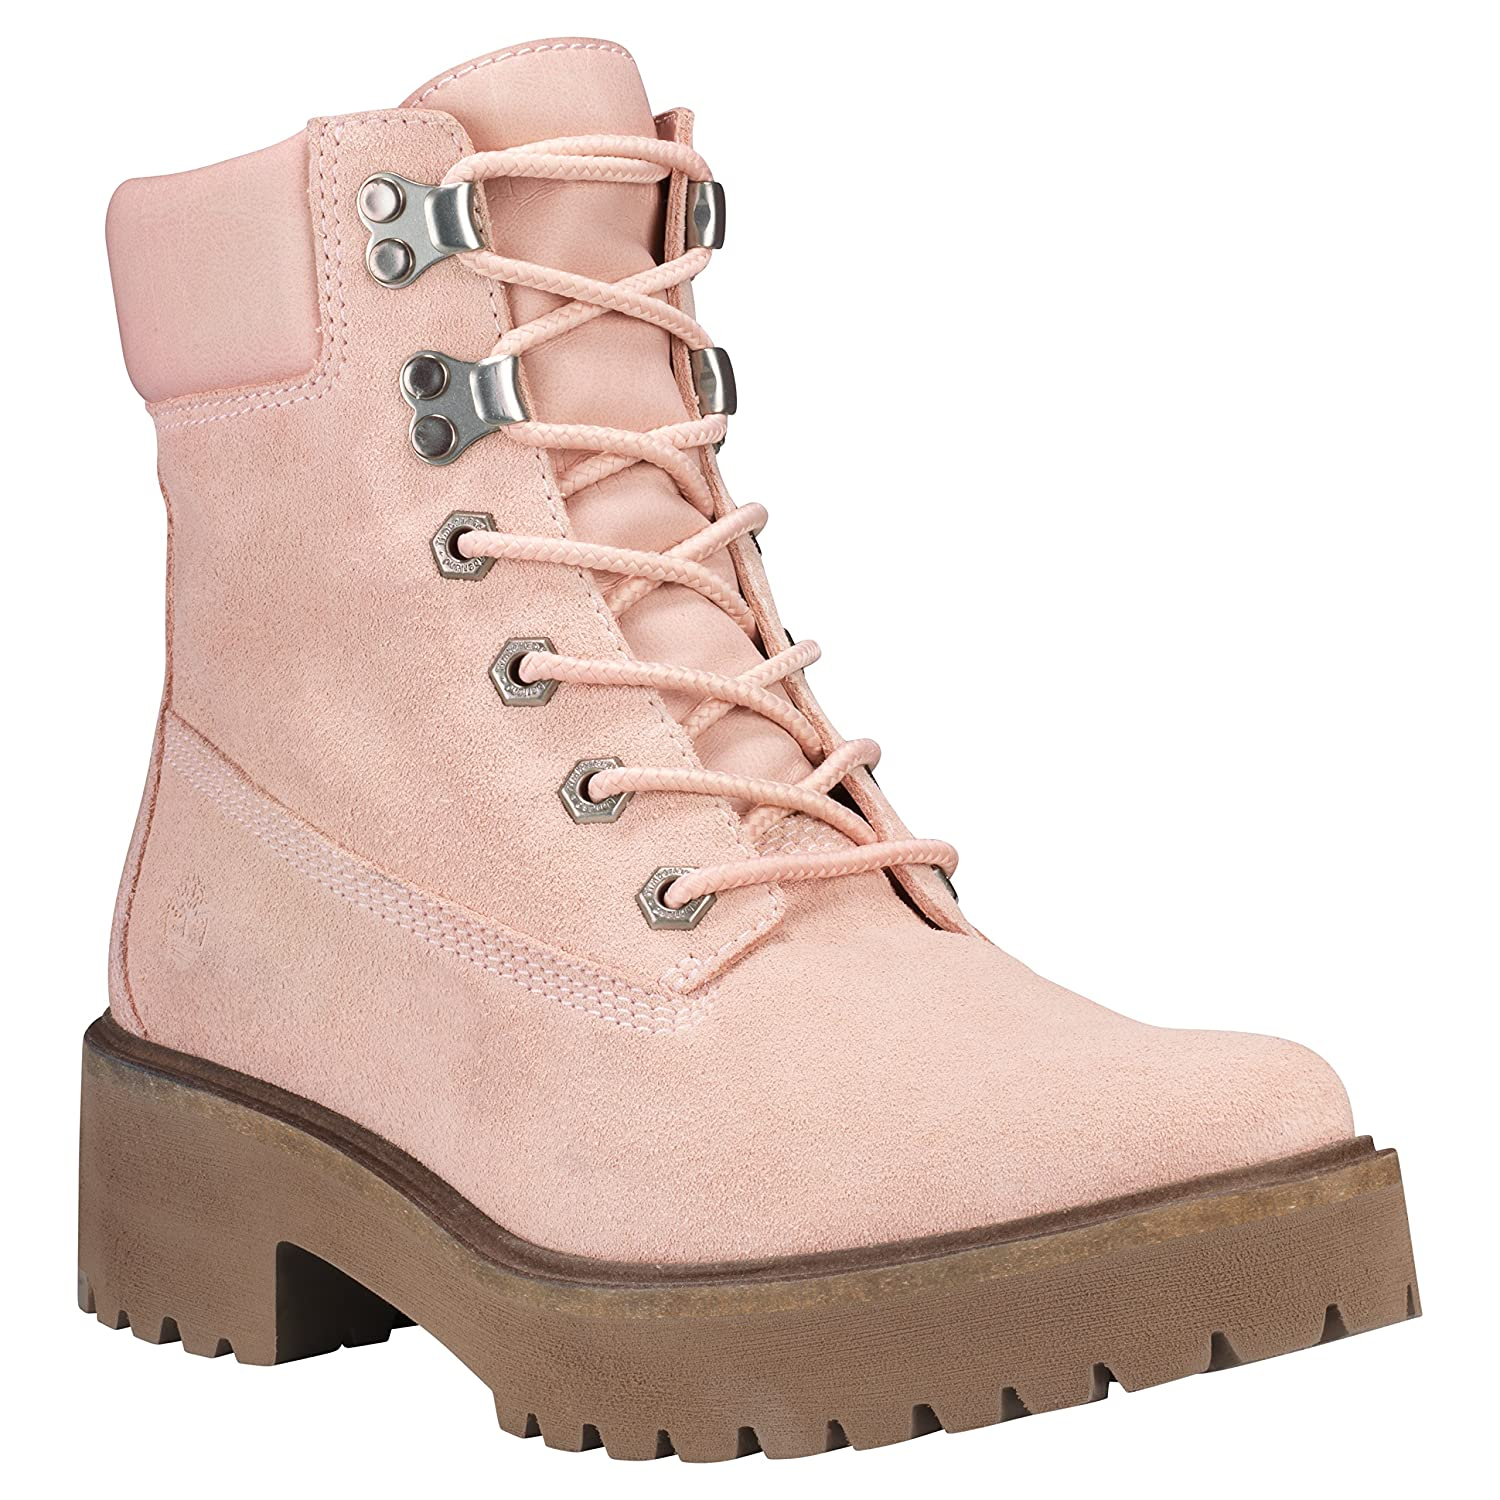 reputable site 9a011 8c600 Timberland Womens Carnaby Cool 6 in Boot Boots  Amazon.ca  Shoes   Handbags